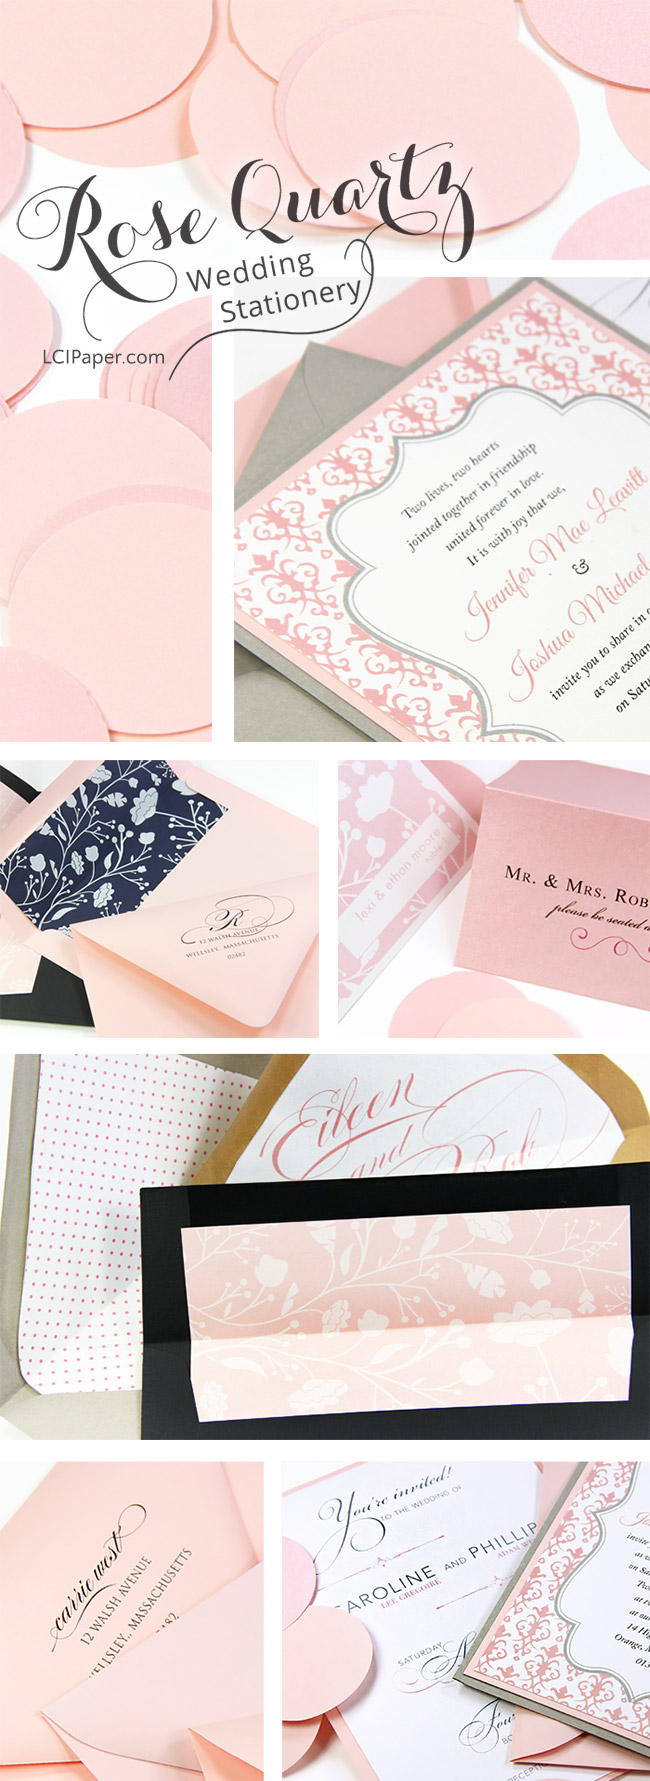 Pantone 2016 color of the year, rose quartz, in wedding invitations, envelopes, place cards